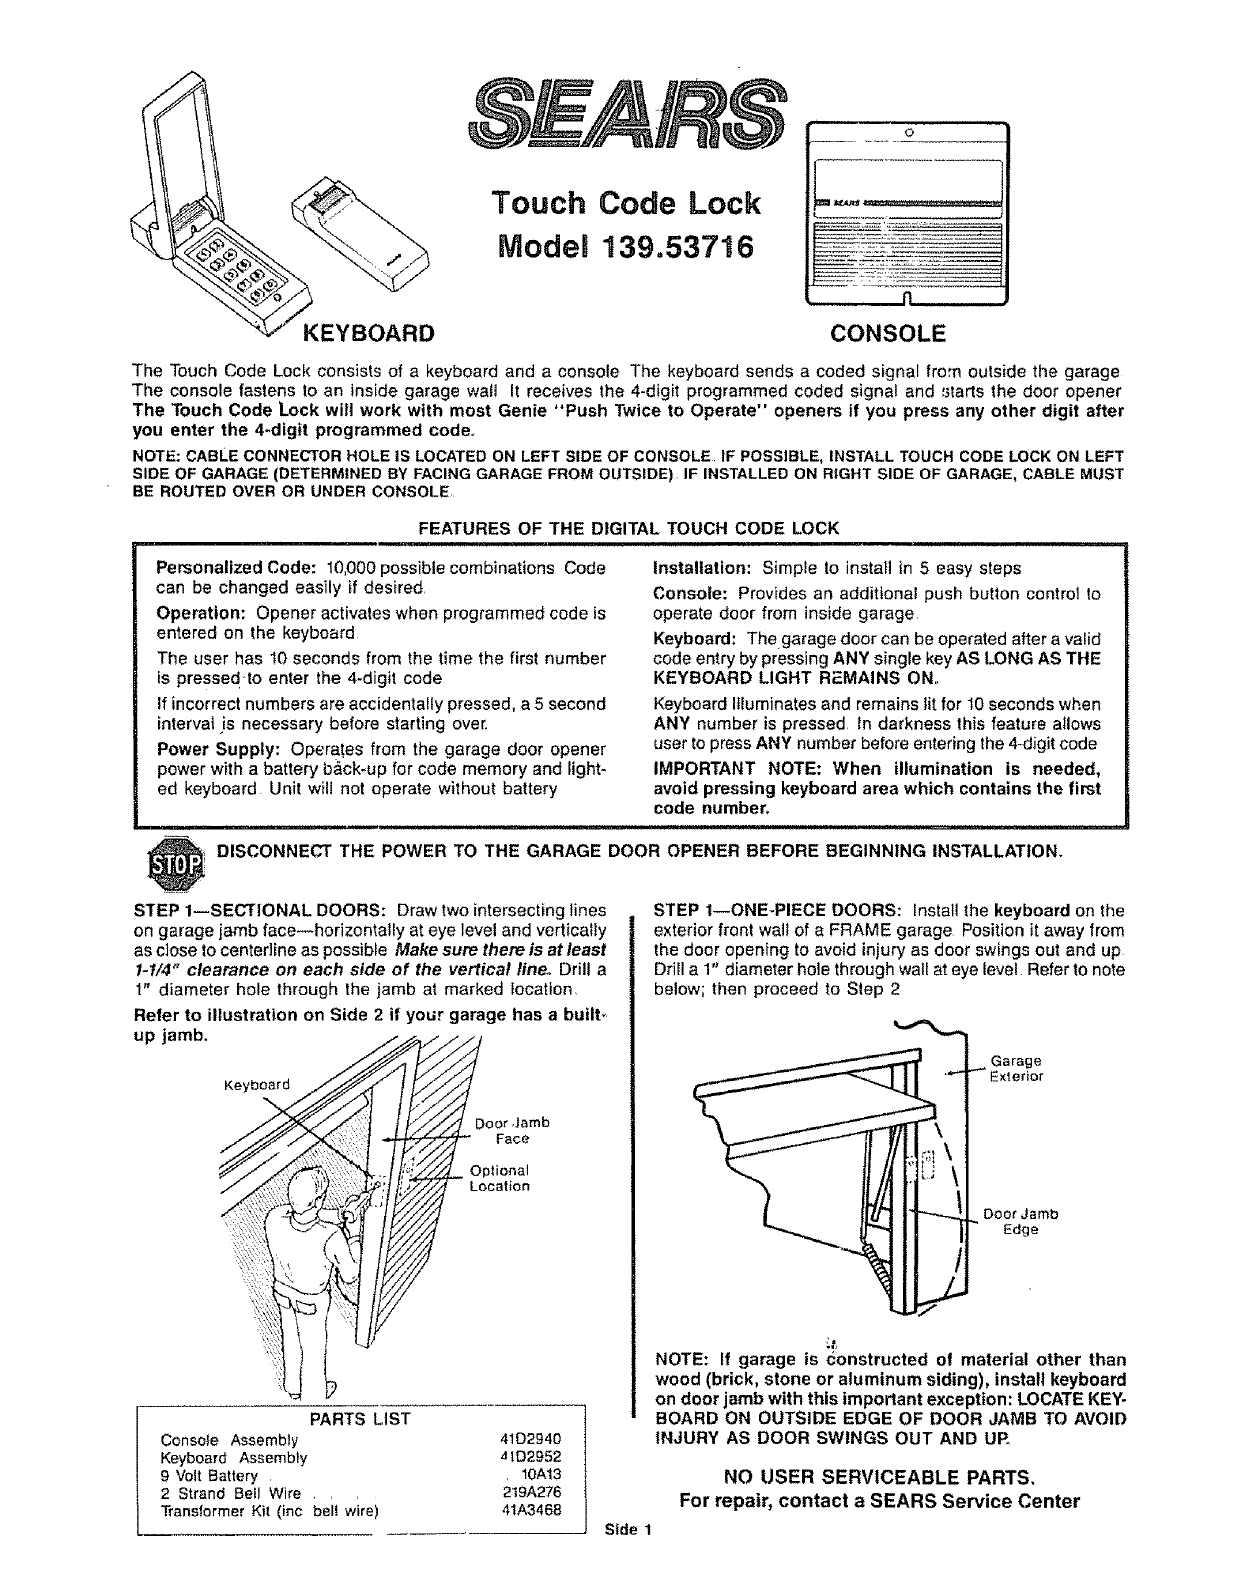 garage and lock outside door to doors latch image from how glass manual aluminum